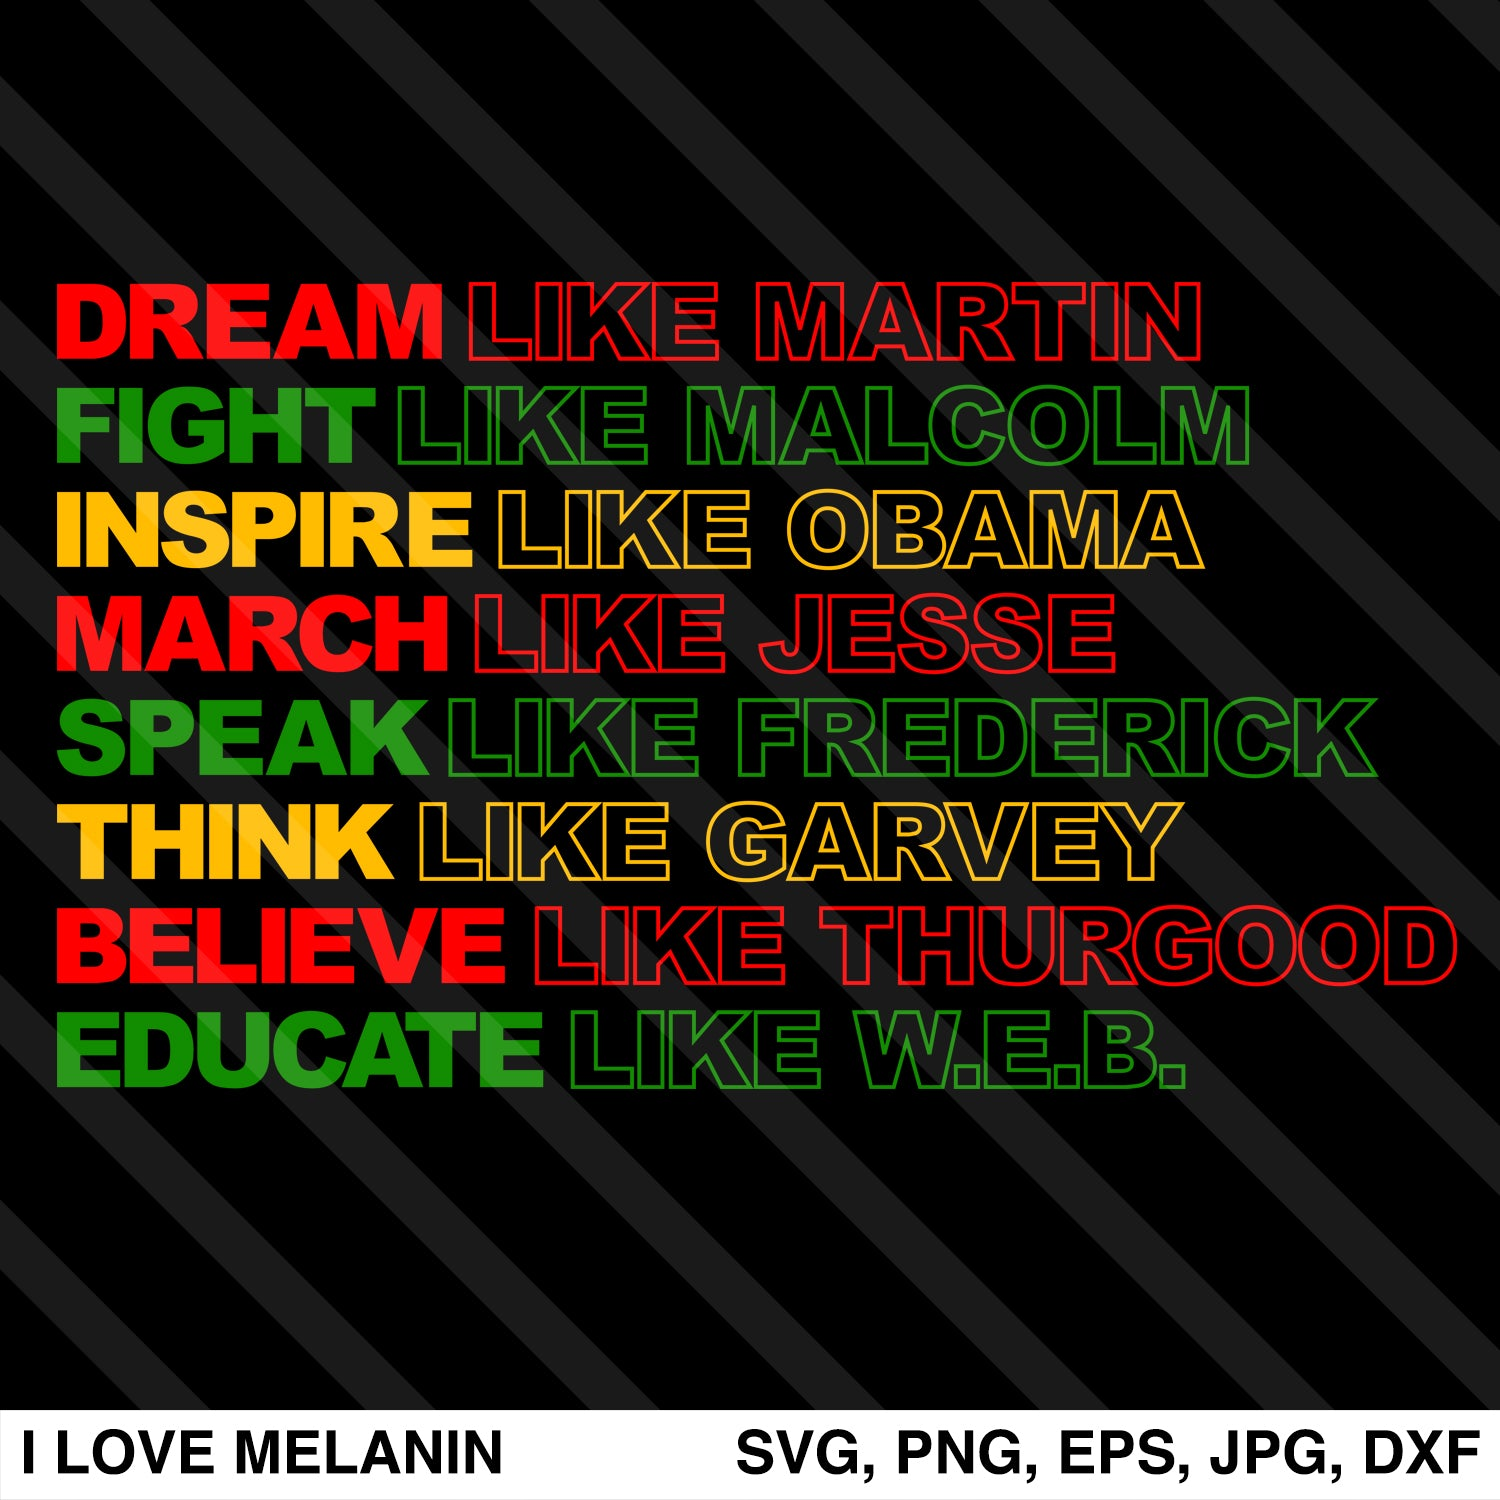 Dream Like Martin SVG